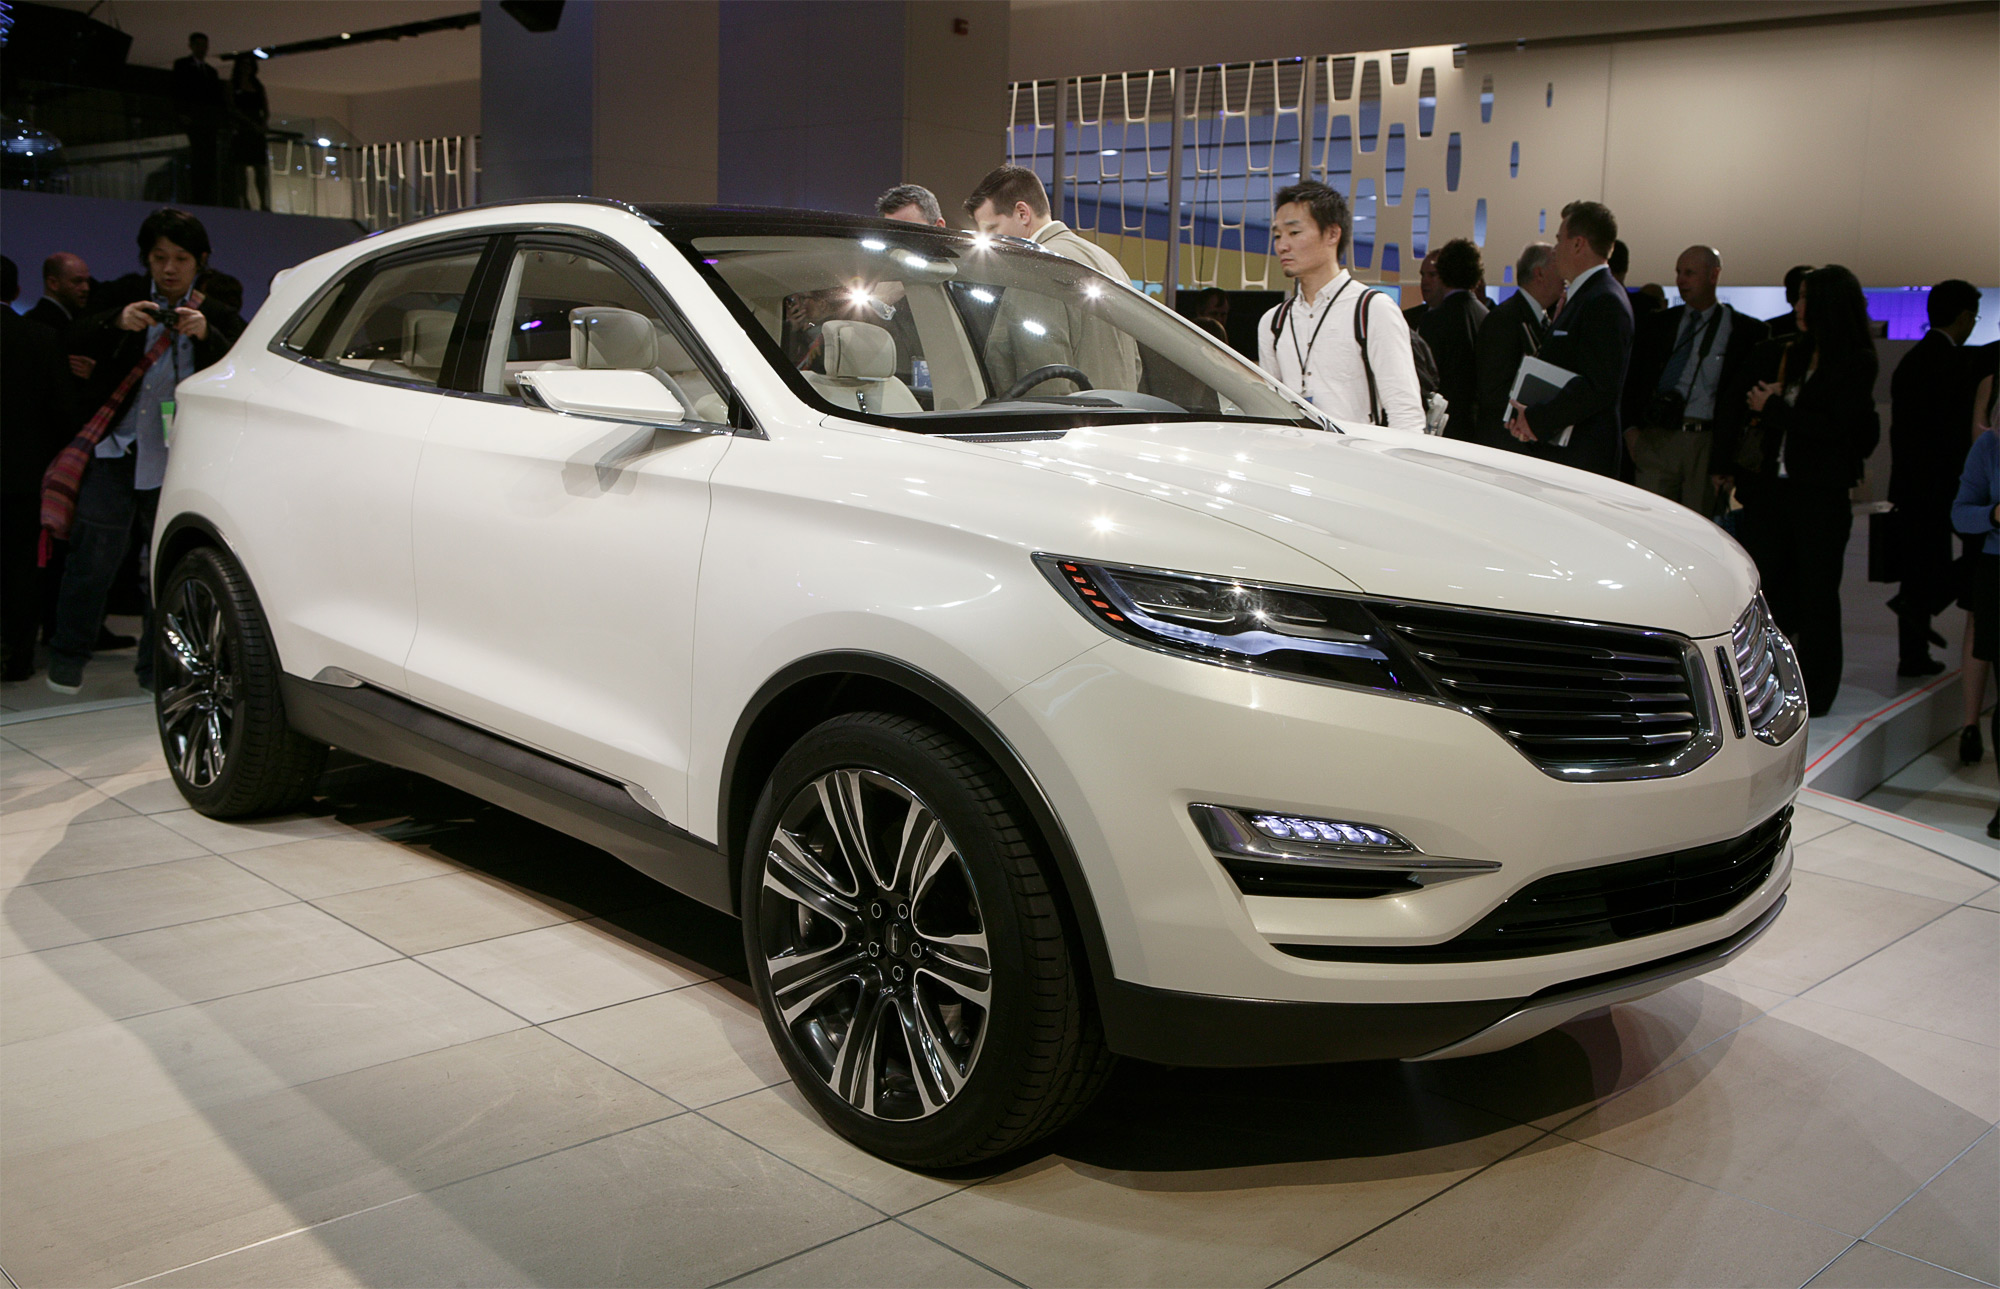 HQ 2014 Lincoln Mkc Concept Wallpapers | File 596.23Kb